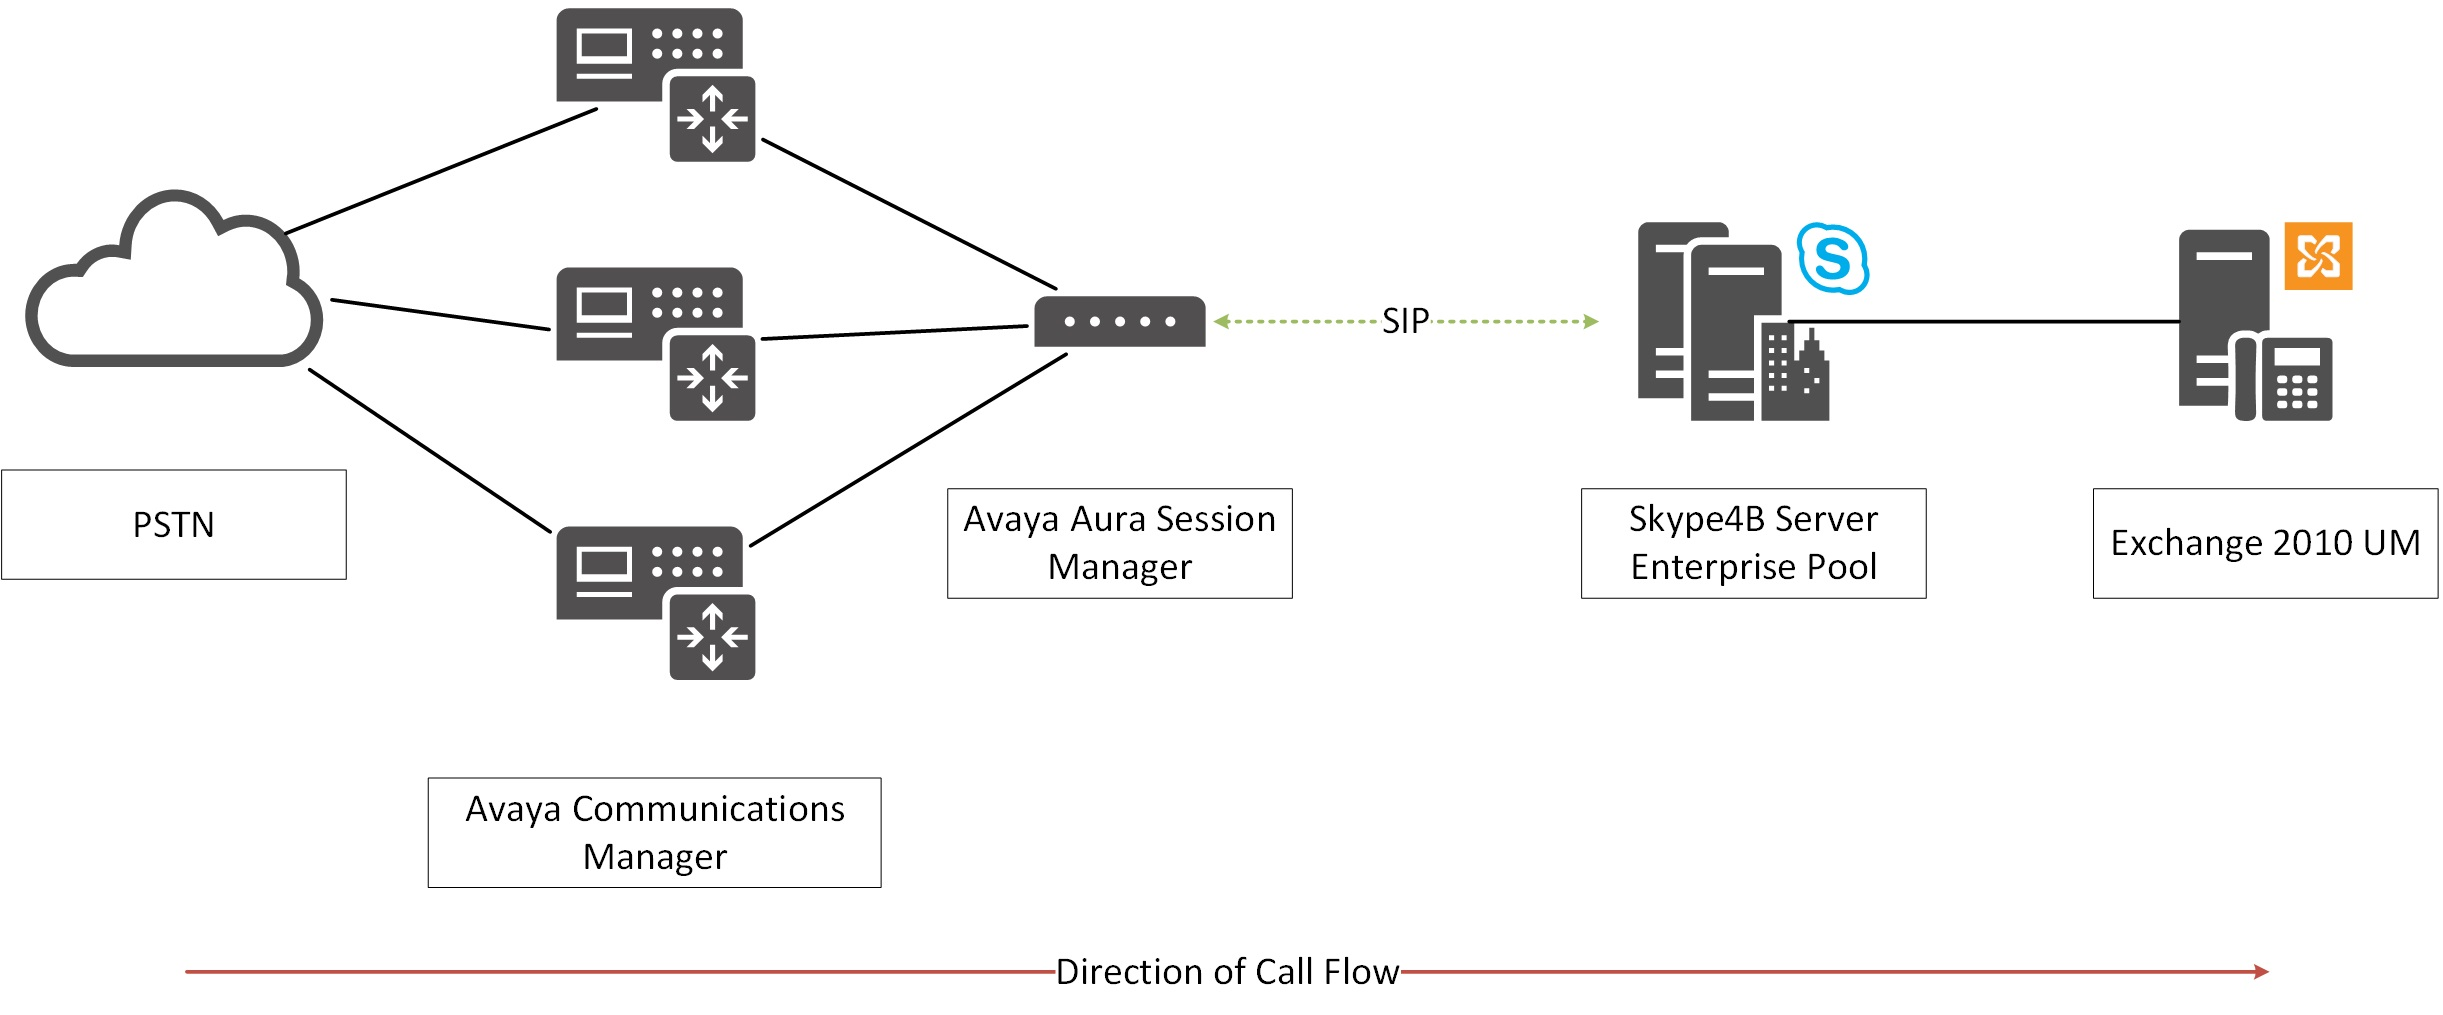 Sip redirect call flow